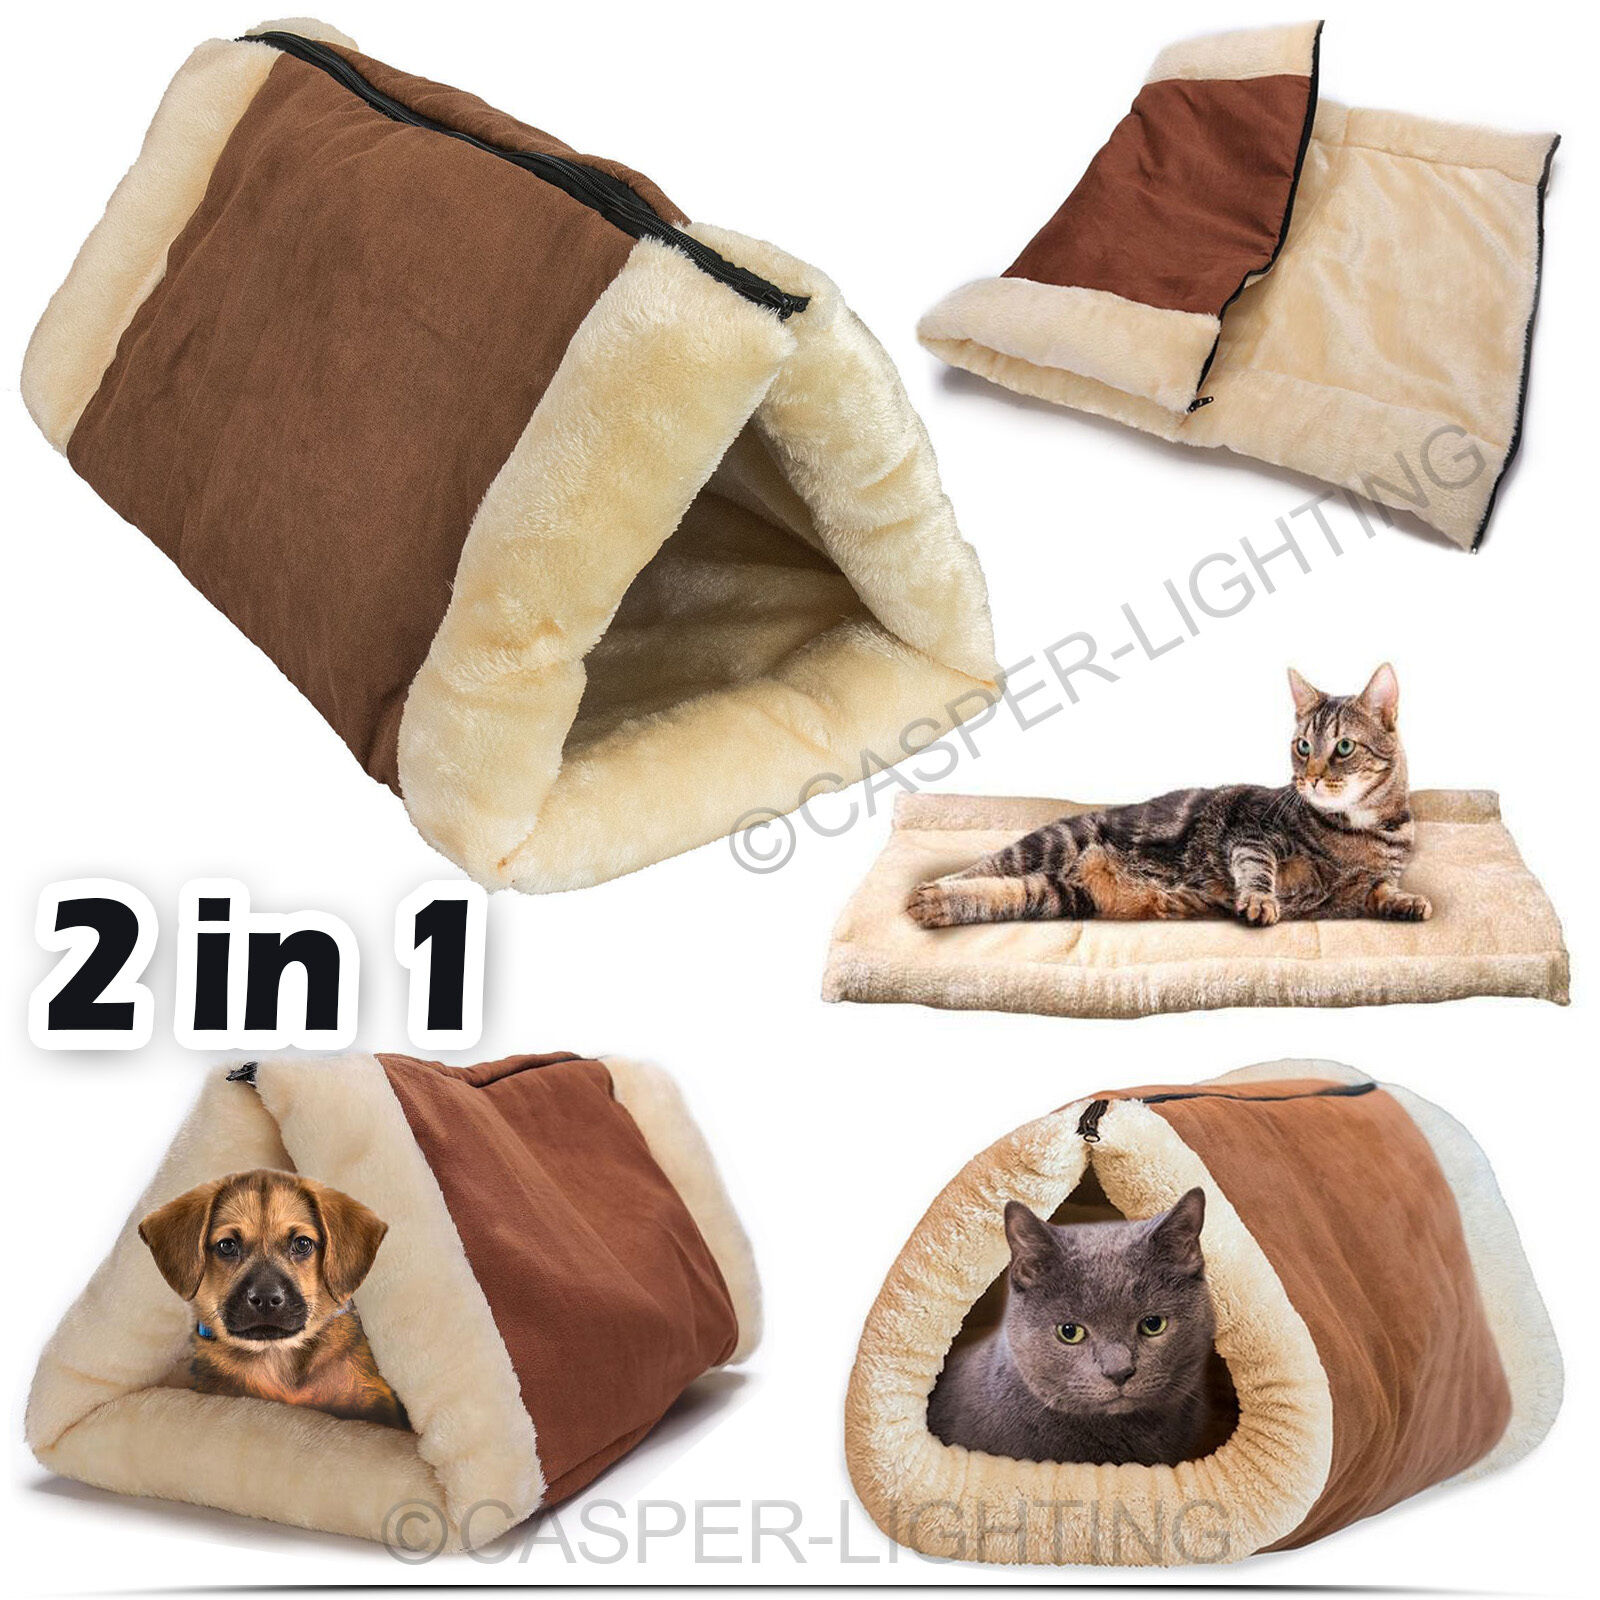 2 In 1 Pet Tunnel Bed Mat Cat Cushion Puppy Pad Fleece Heating Sofa Pet Blanket